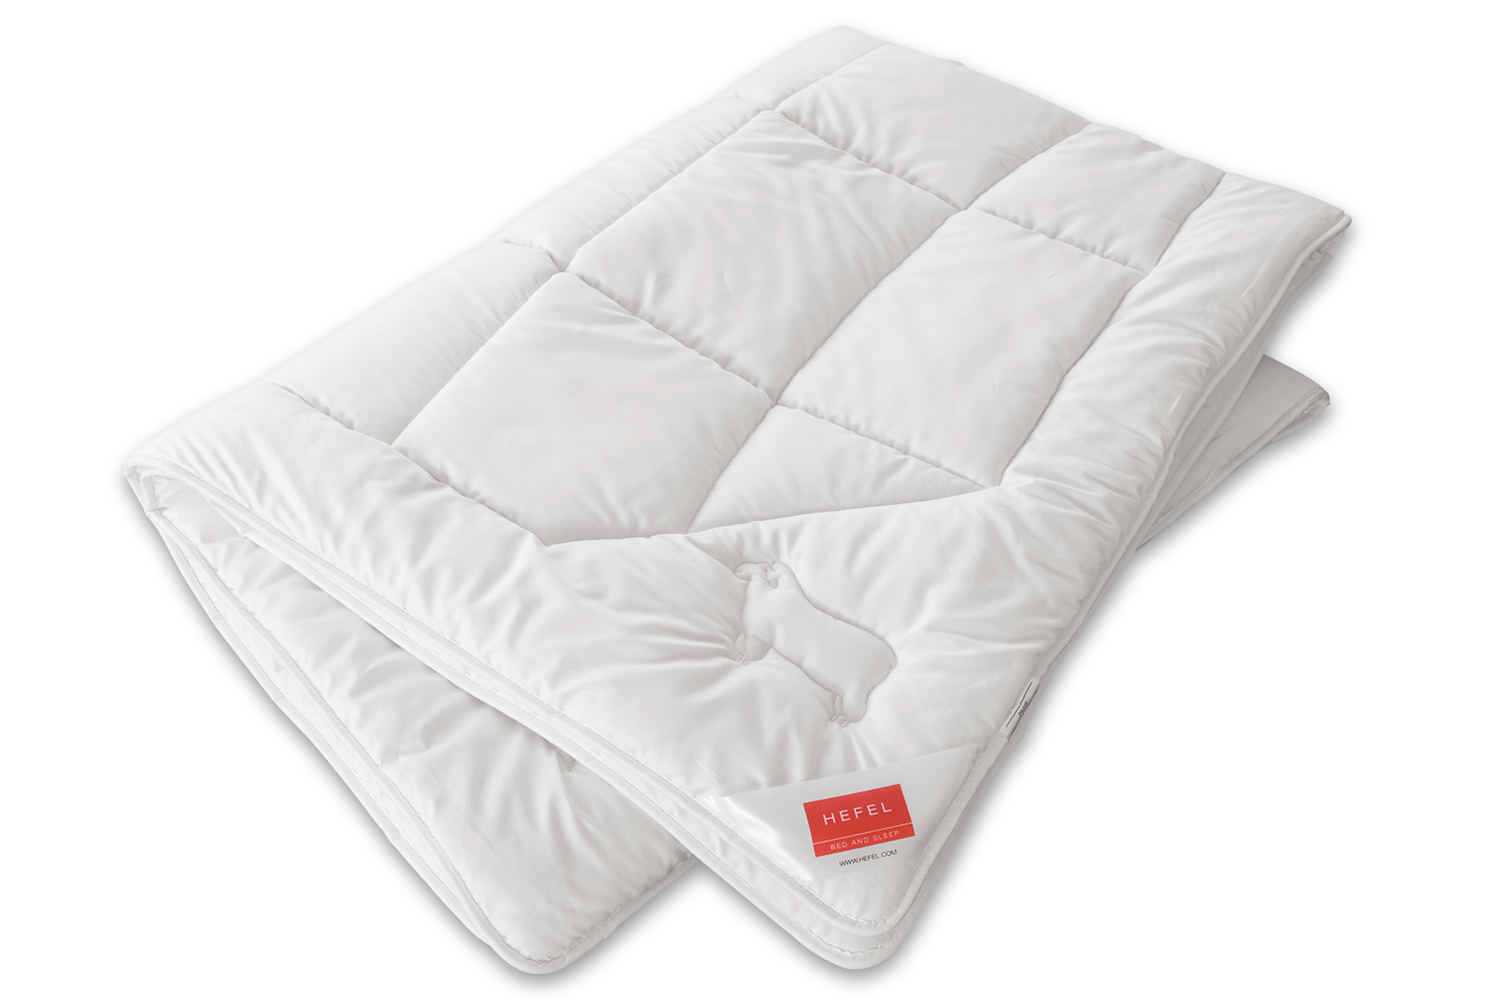 wool green comforter island friendly living pure organic earth and p weights three coverlets goods grow comforters tufted blankets hand